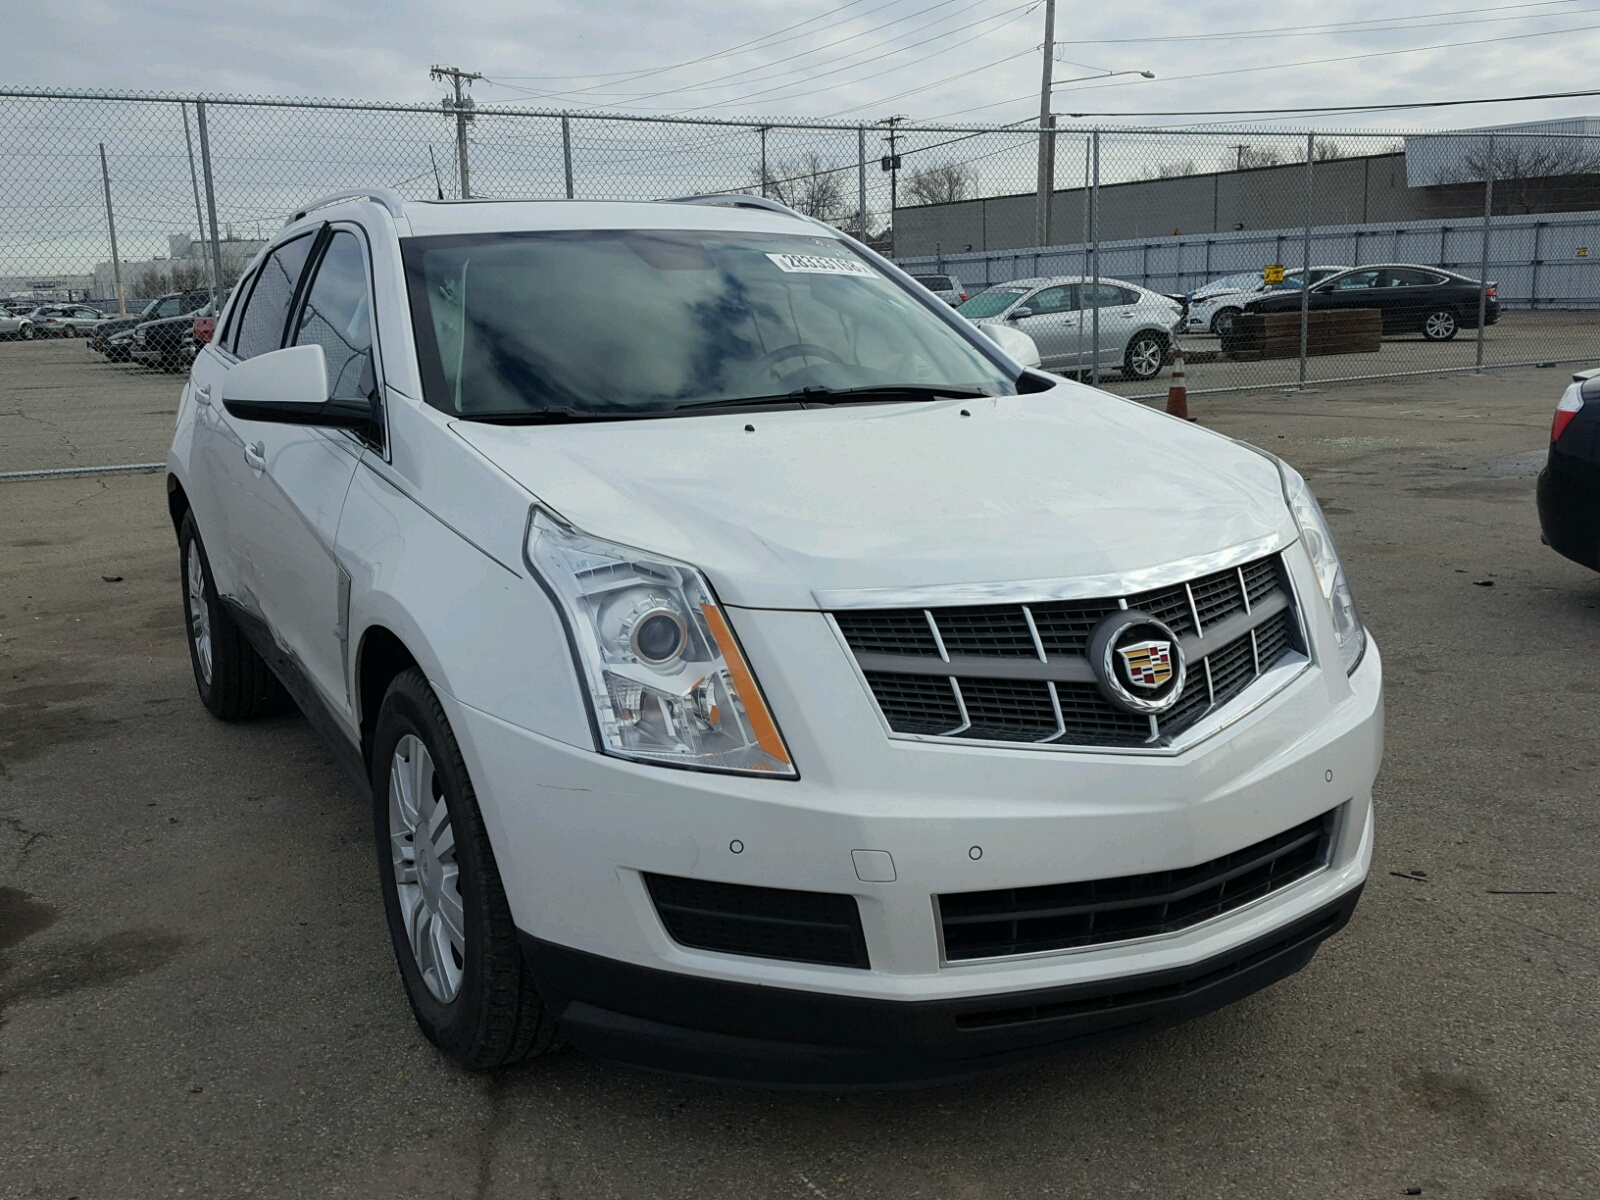 details mileage suv extra photo luxury cadillac srx clean low collection vehicle awd